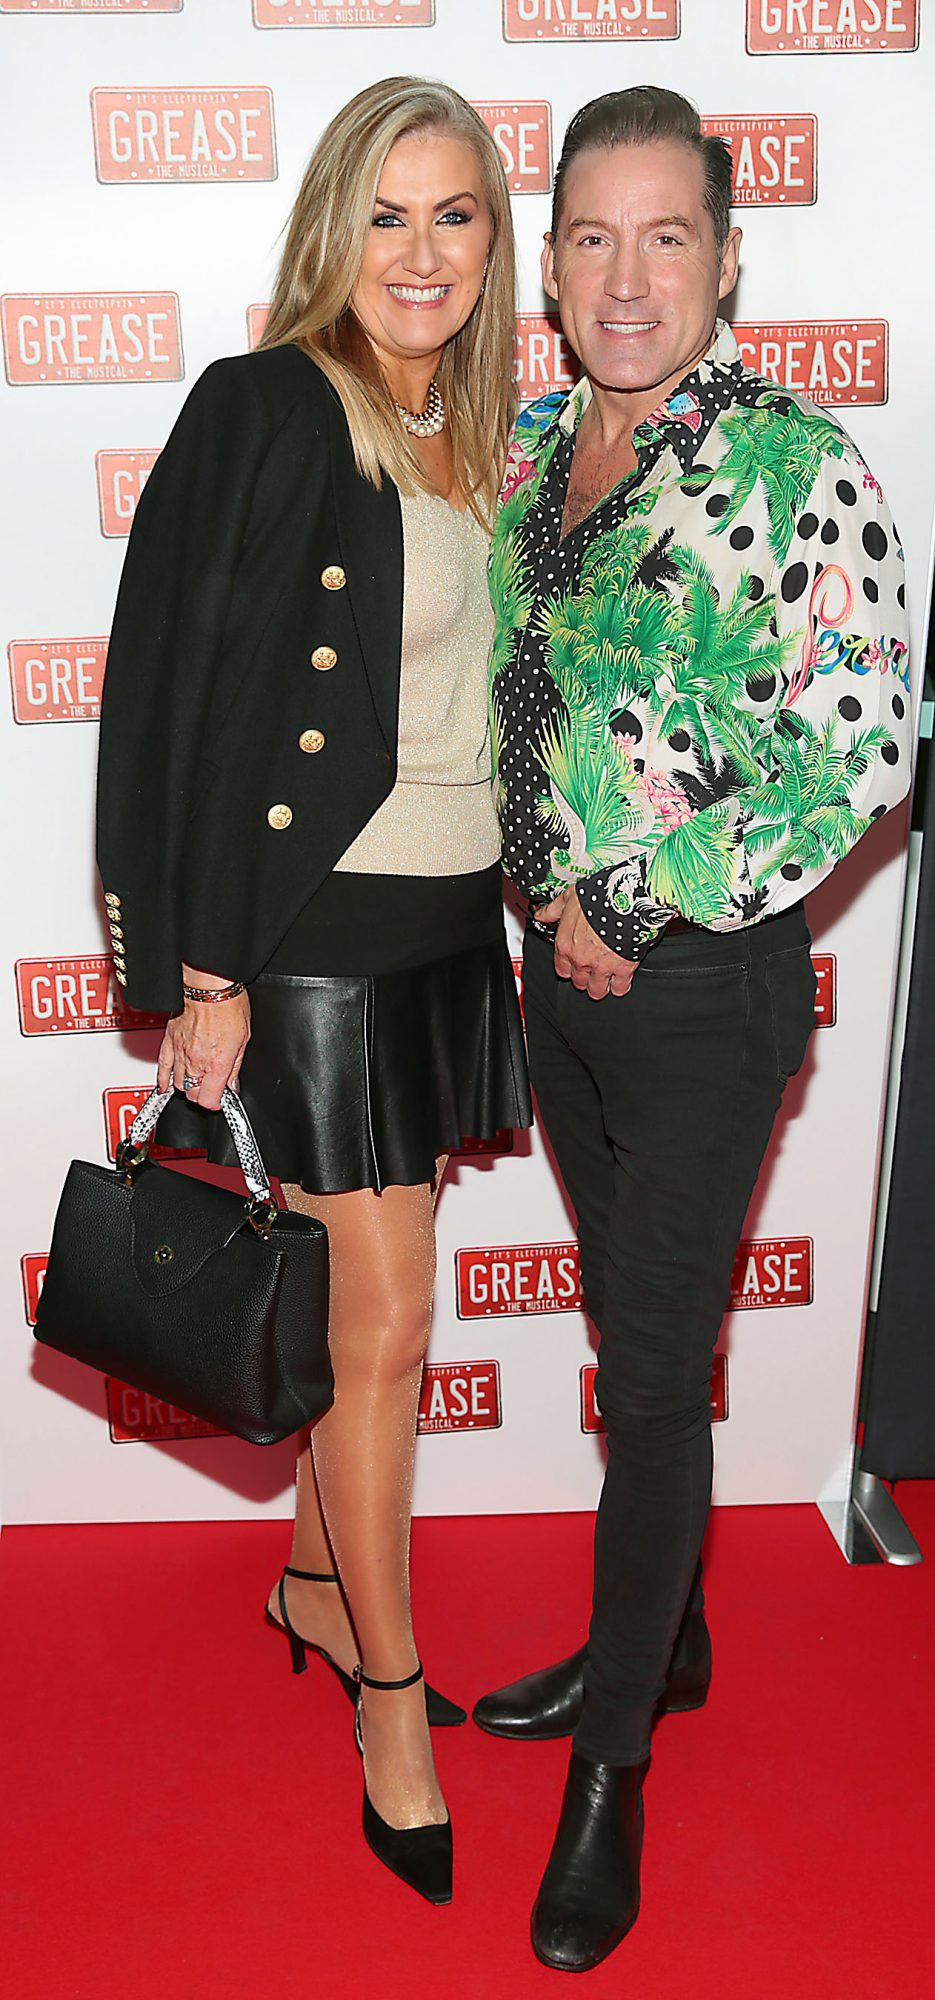 Derville Meade and Julian Benson pictured at the opening night of the musical Grease at the Bord Gais Energy Theatre, Dublin. Pic: Brian McEvoy